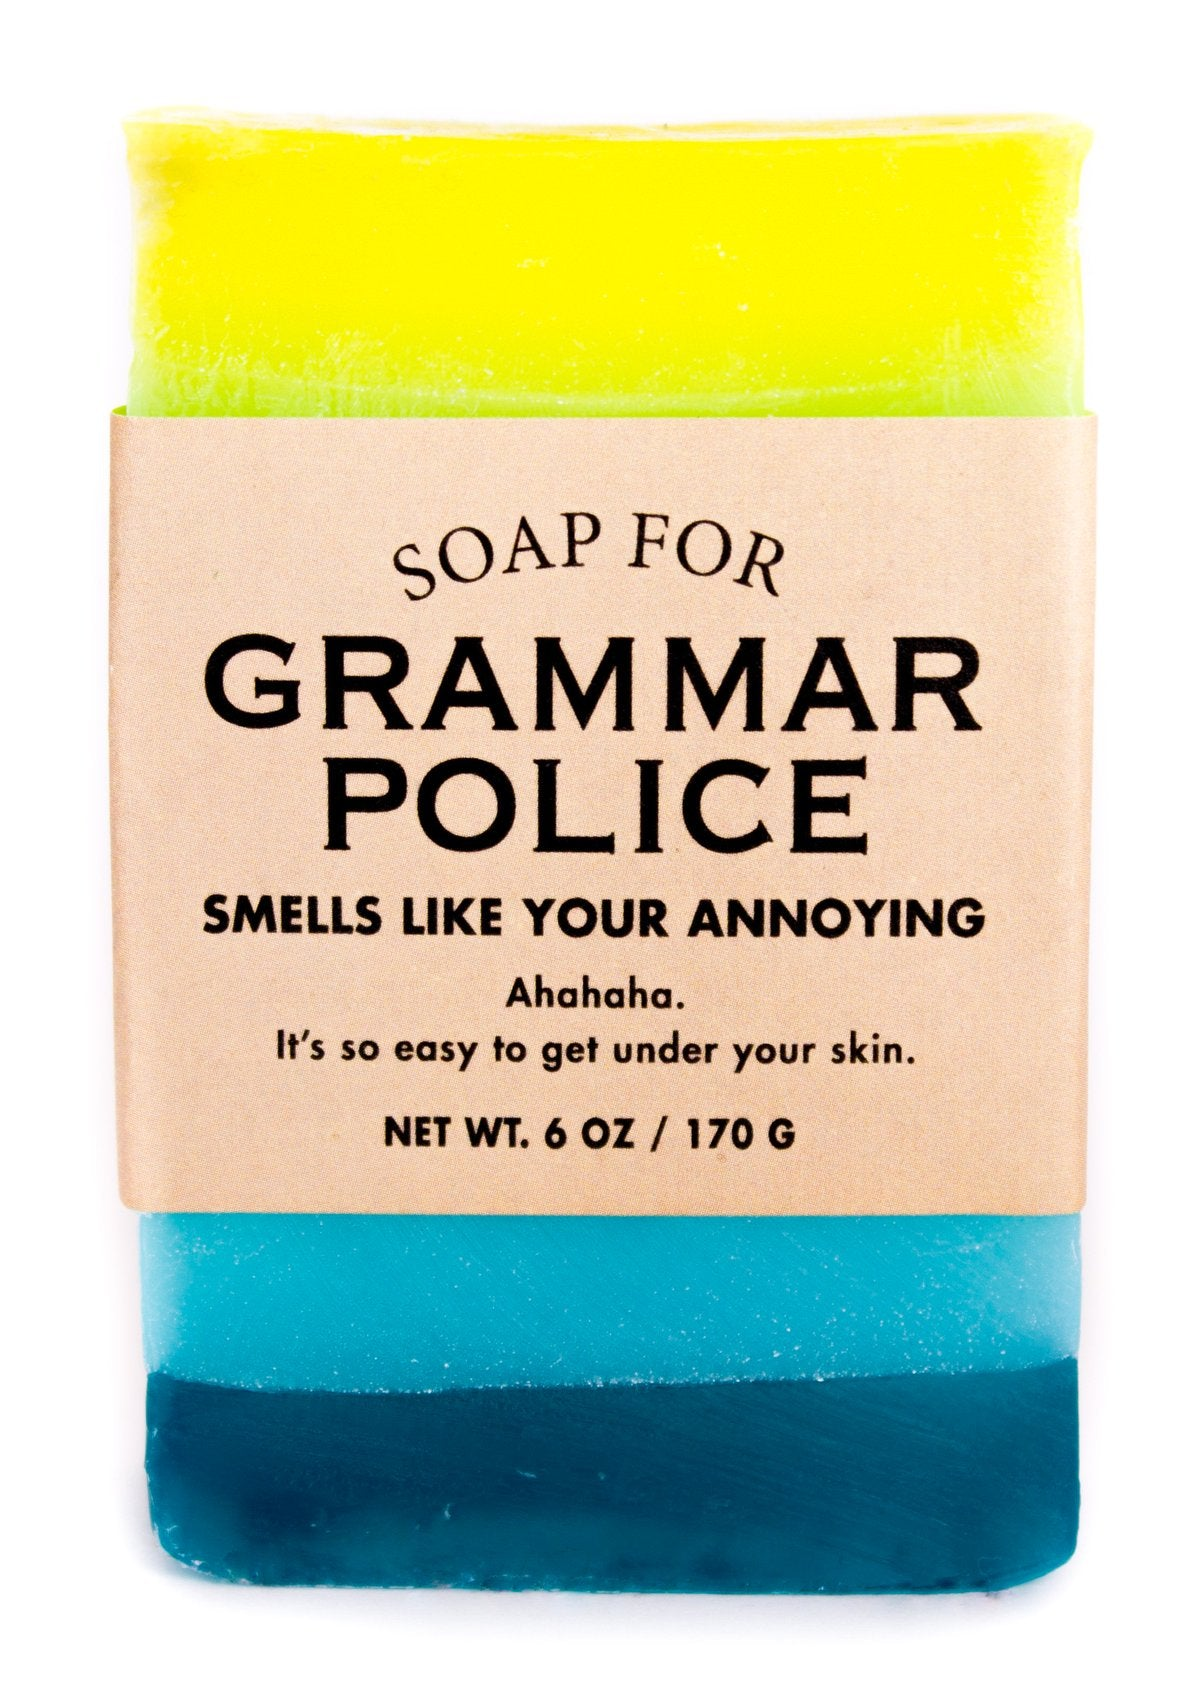 Soap for Grammar Police - Heart of the Home PA